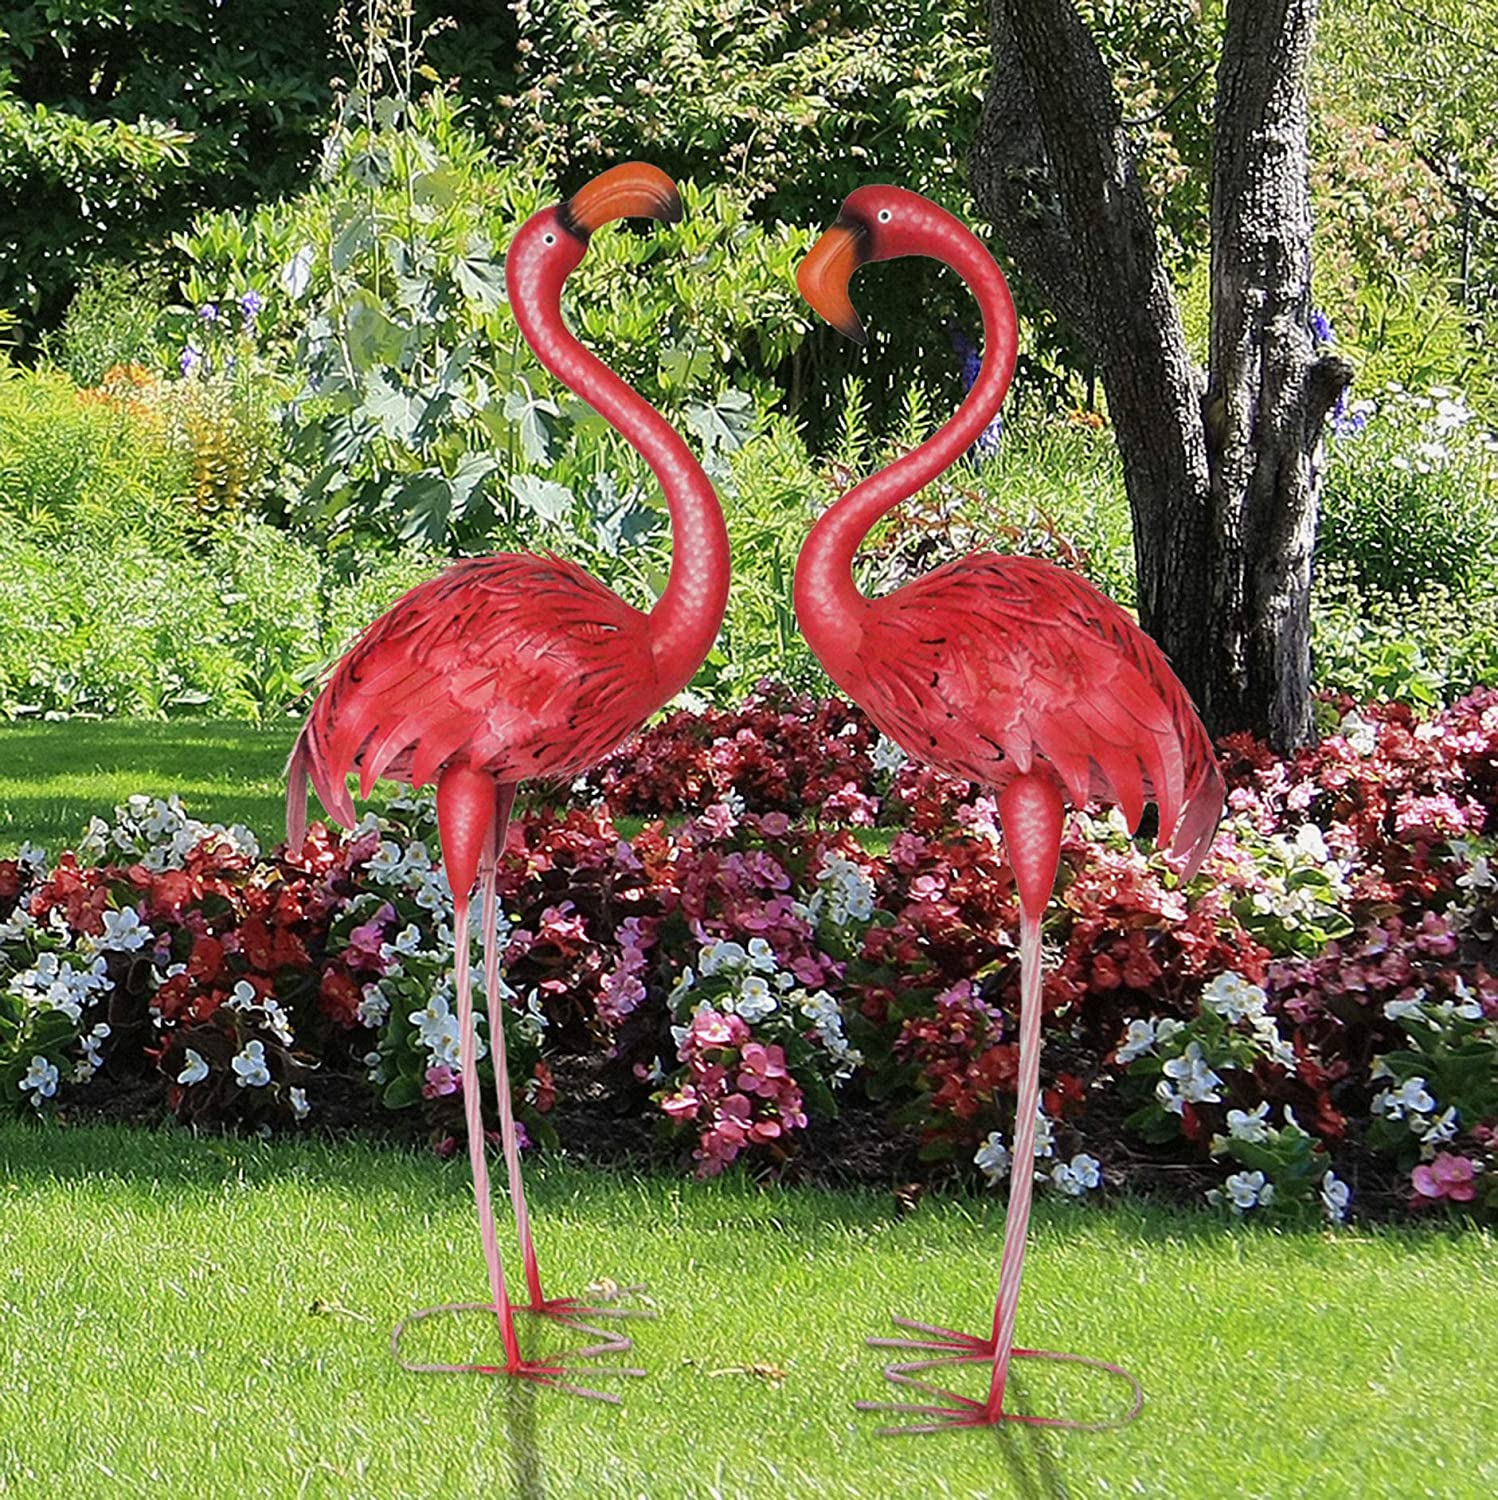 CYA-DECOR Flamingo Garden Statues and Sculptures Outdoor Metal Birds Yard Art for Home Patio Lawn Pond Flowerbed, 1 Pair